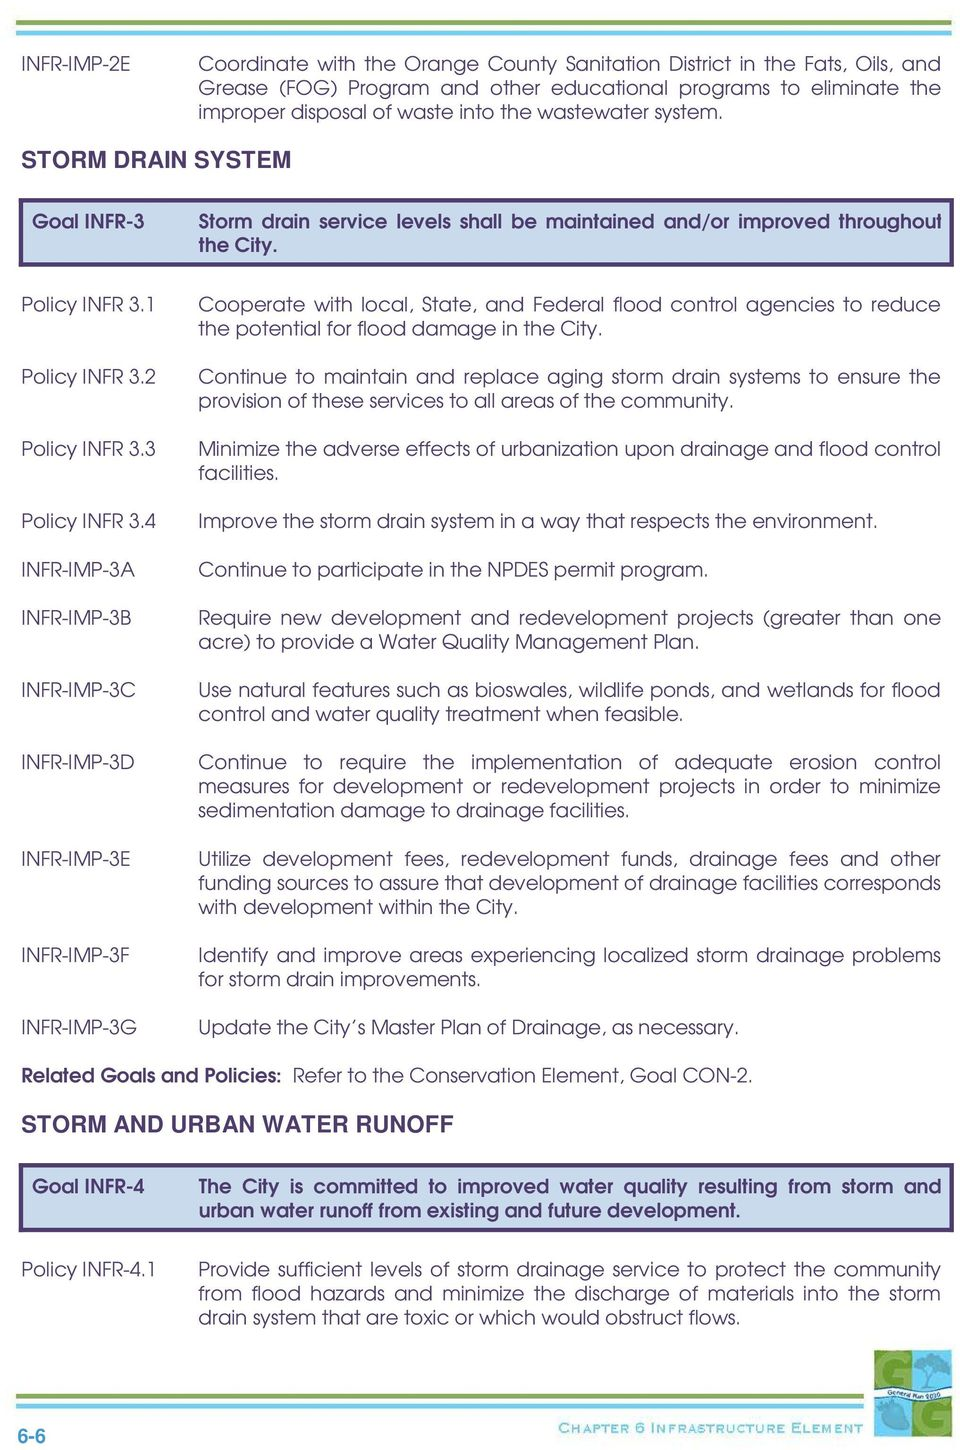 4 INFR-IMP-3A INFR-IMP-3B INFR-IMP-3C INFR-IMP-3D INFR-IMP-3E INFR-IMP-3F INFR-IMP-3G Cooperate with local, State, and Federal flood control agencies to reduce the potential for flood damage in the